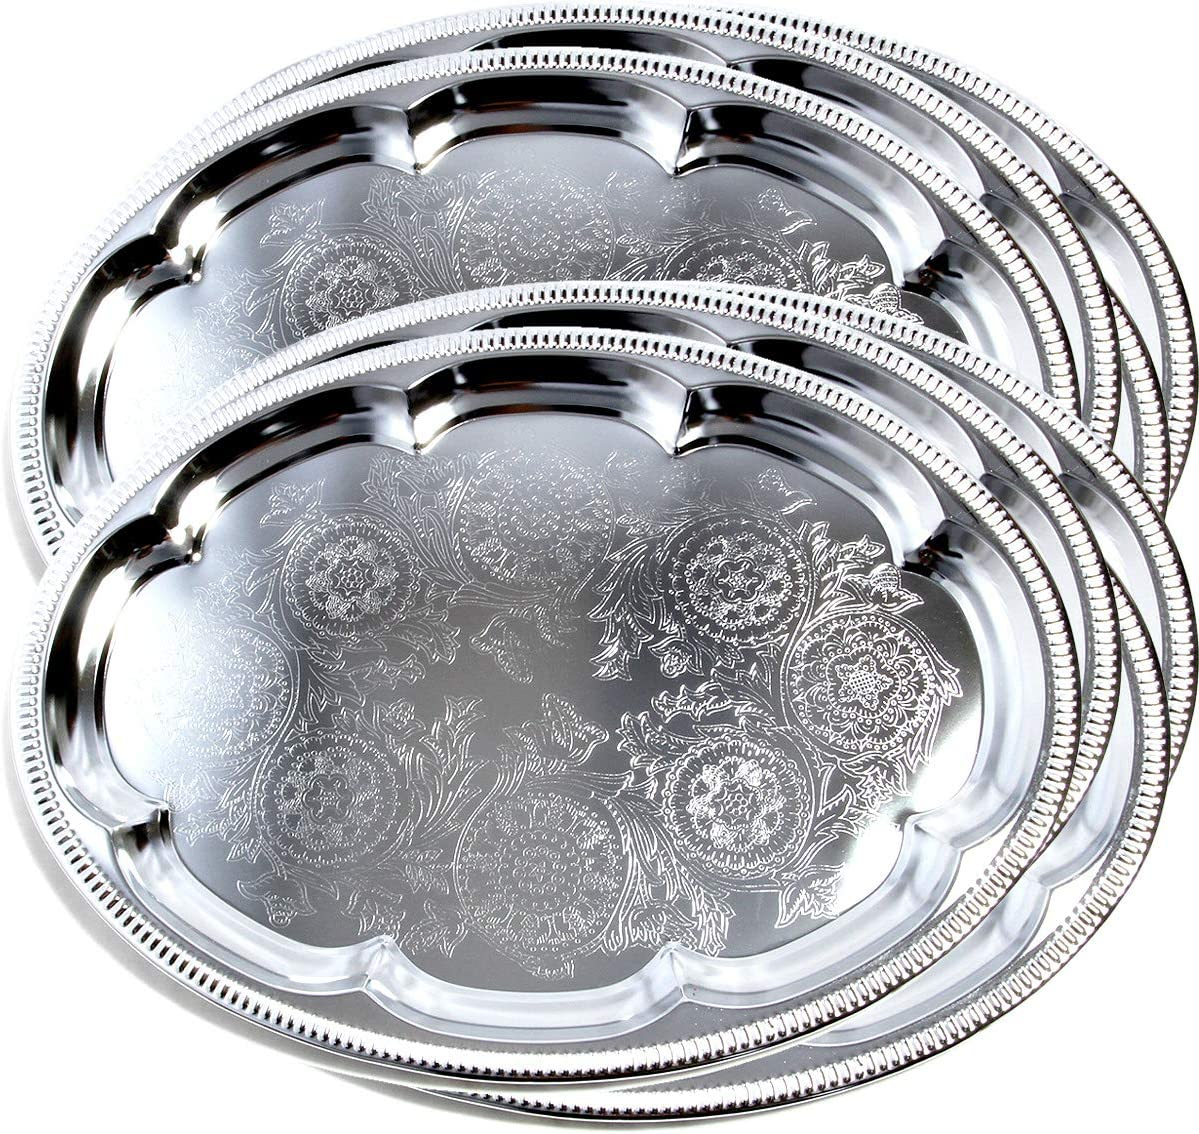 Maro Megastore (Pack of 8) 12-Inch x 9-Inch Traditional Oval Floral Pattern Engraved Catering Chrome Plated Serving Plate Mirror Tray Platter Tableware Christmas Party Gift Base Decor(Small) T225s-8pk